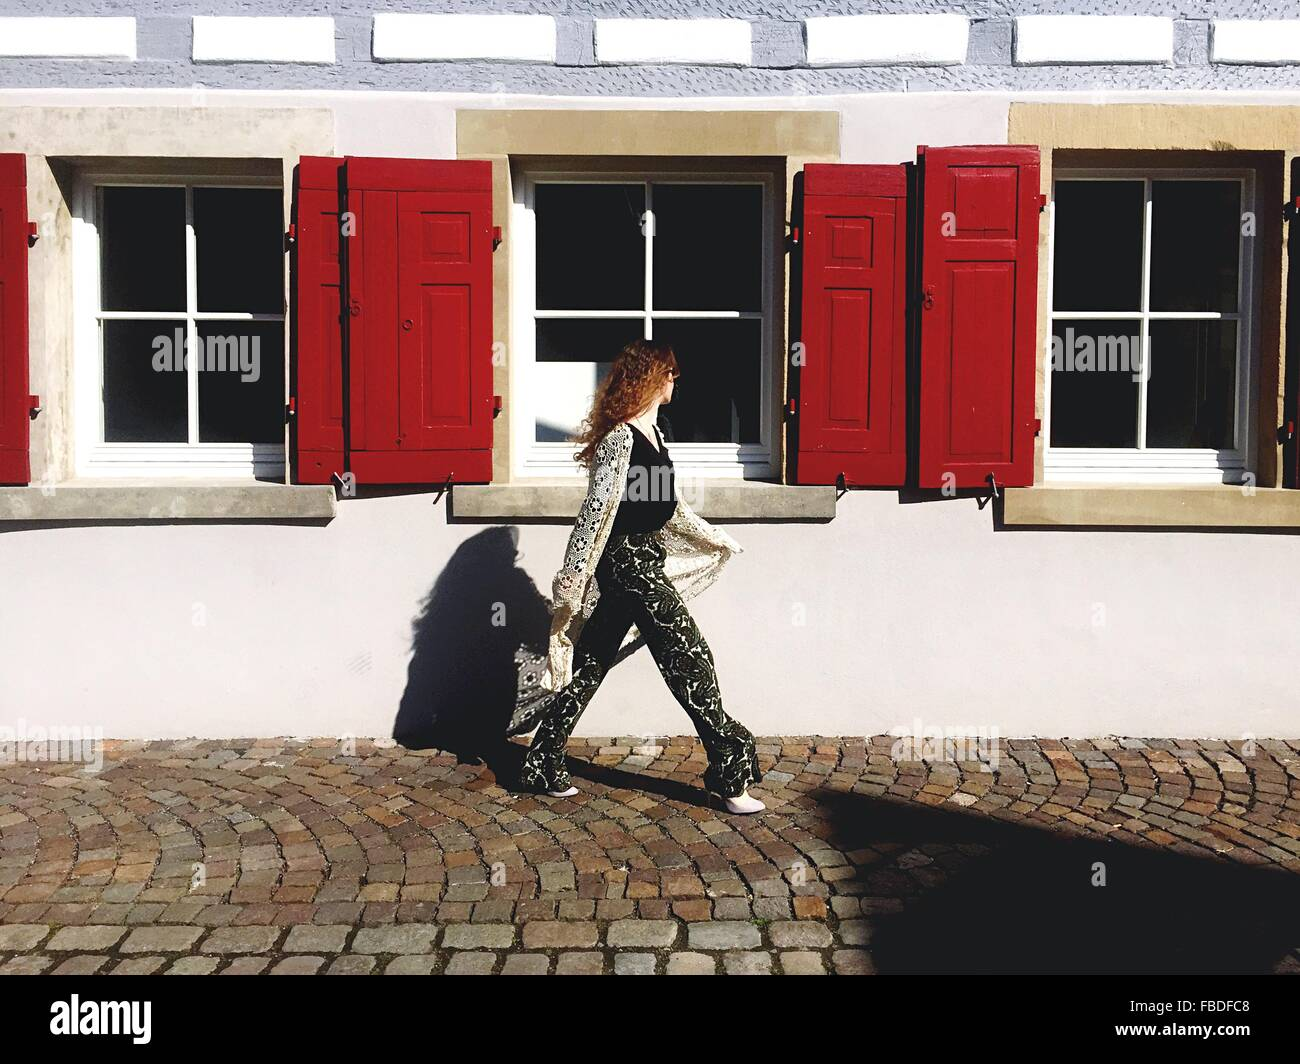 Woman Walking On Street Against Building - Stock Image